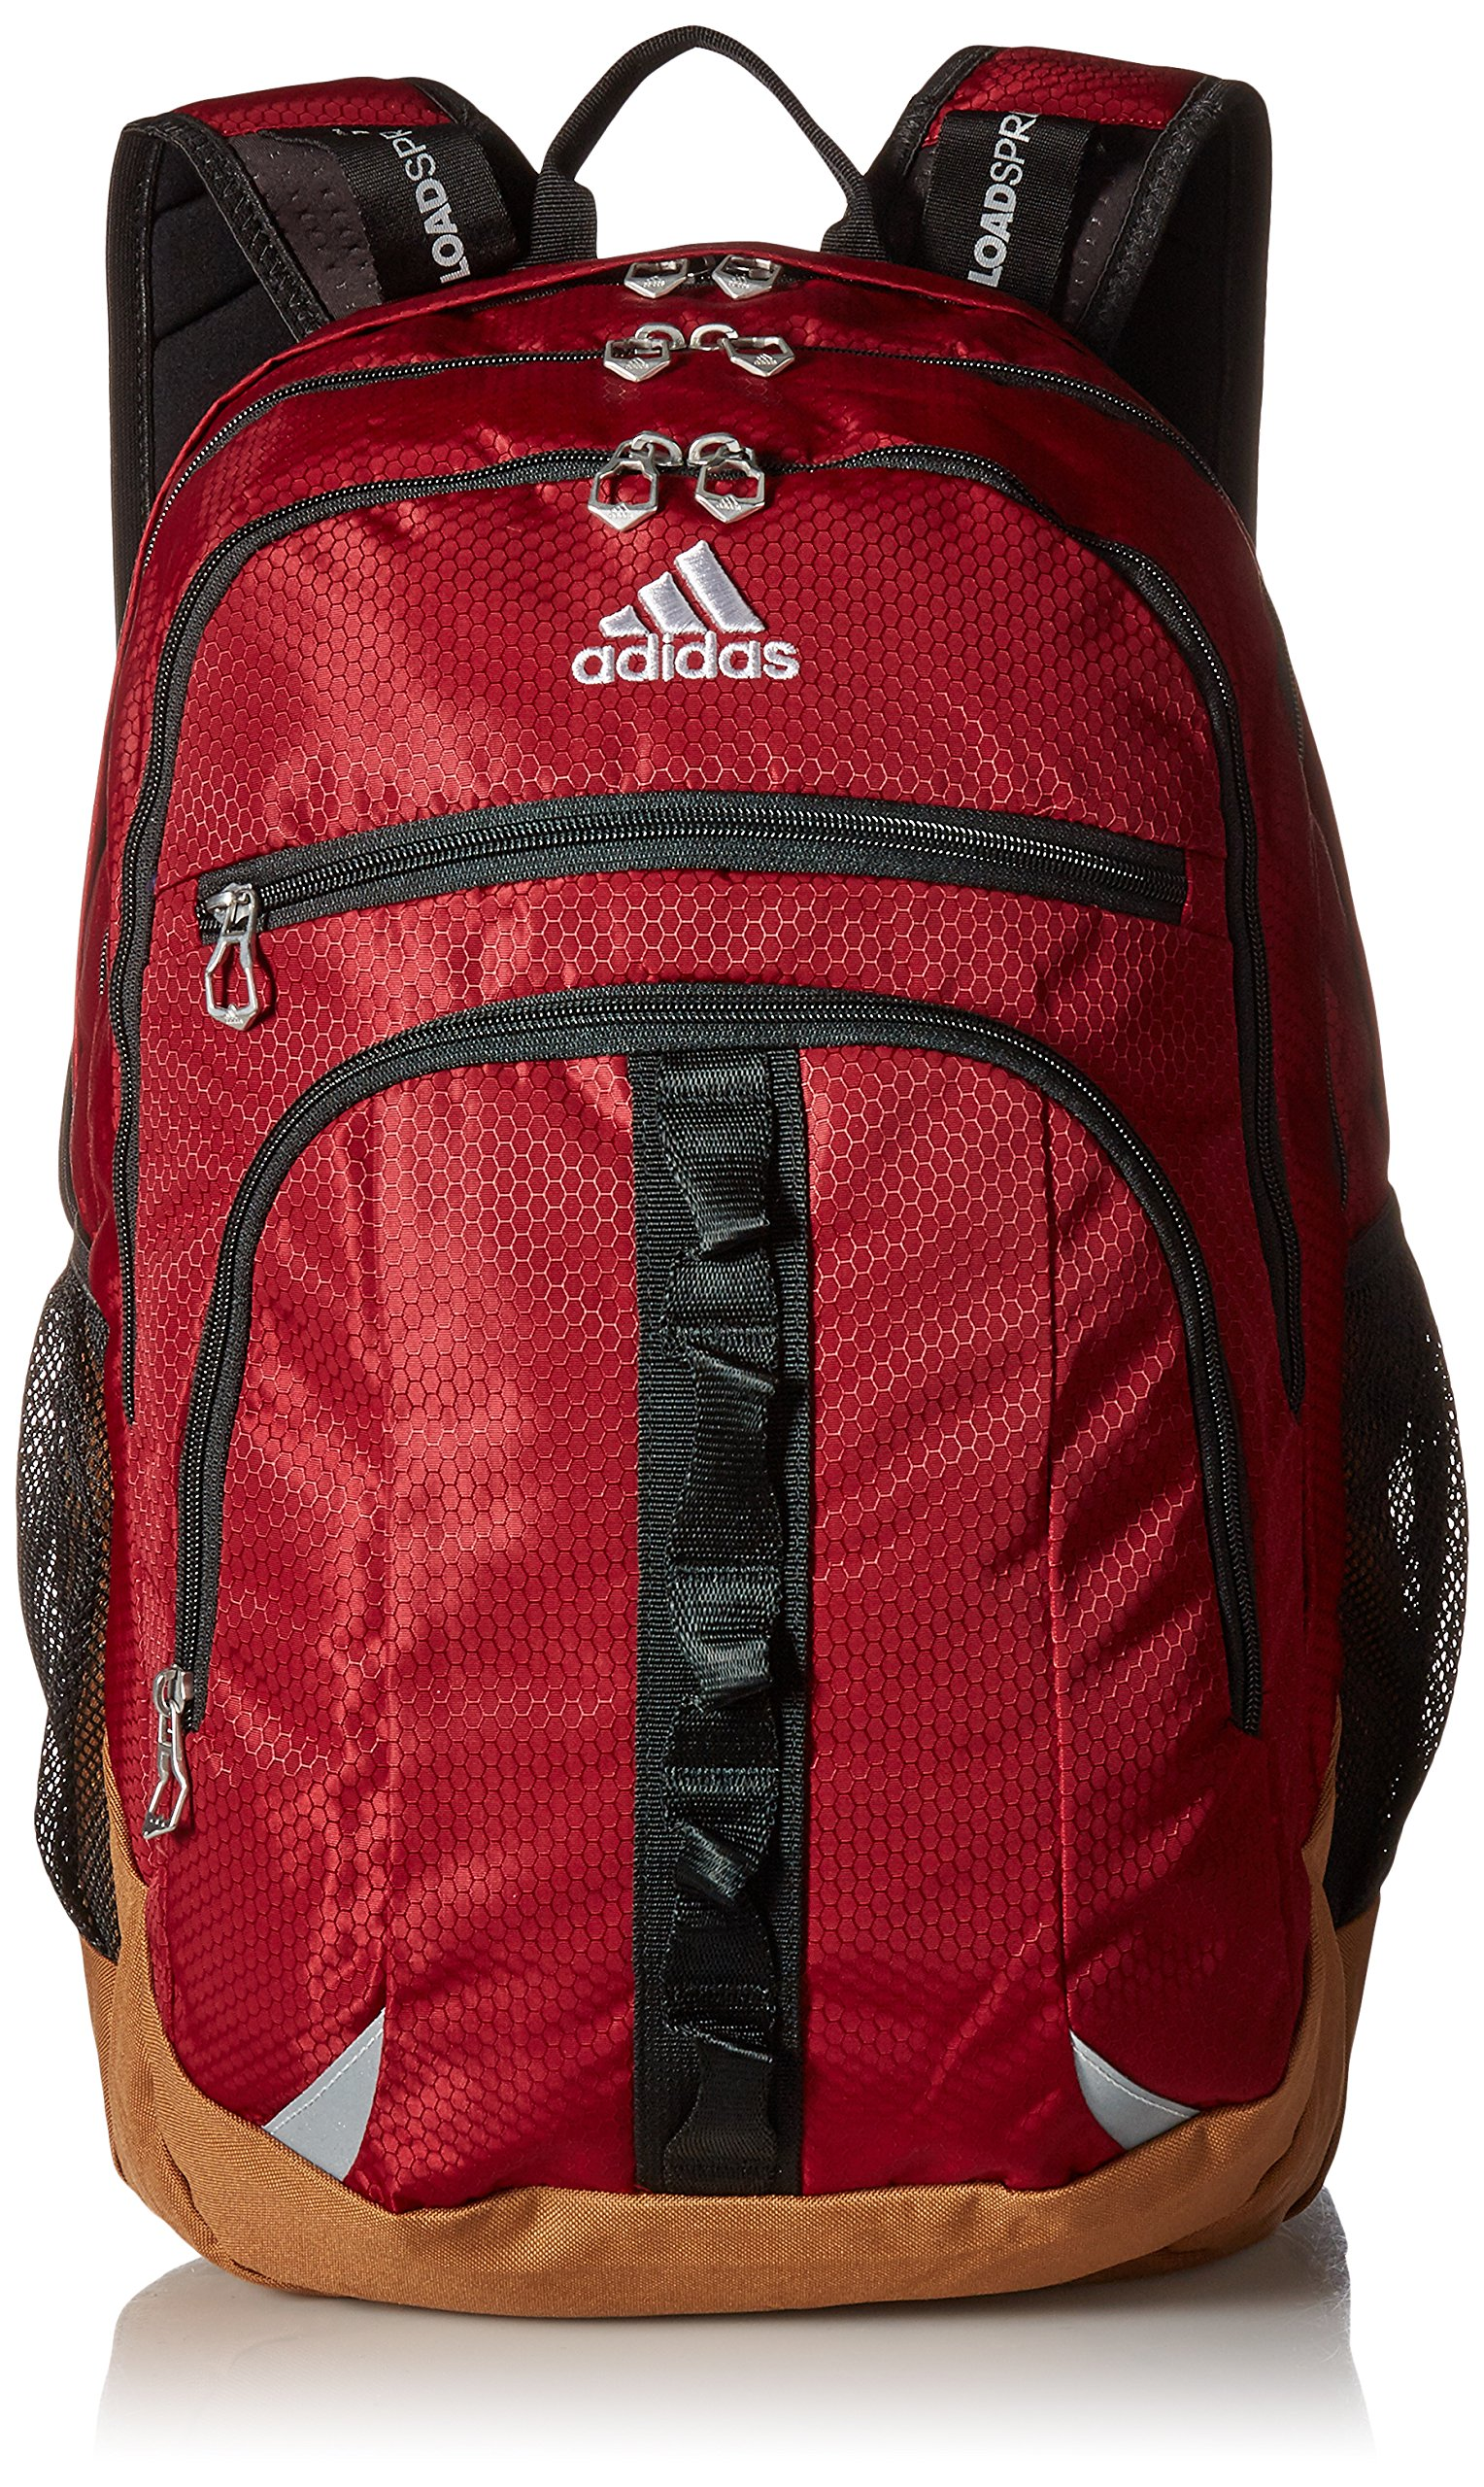 Galleon - Adidas Prime III Backpack 80949a71cc8f6